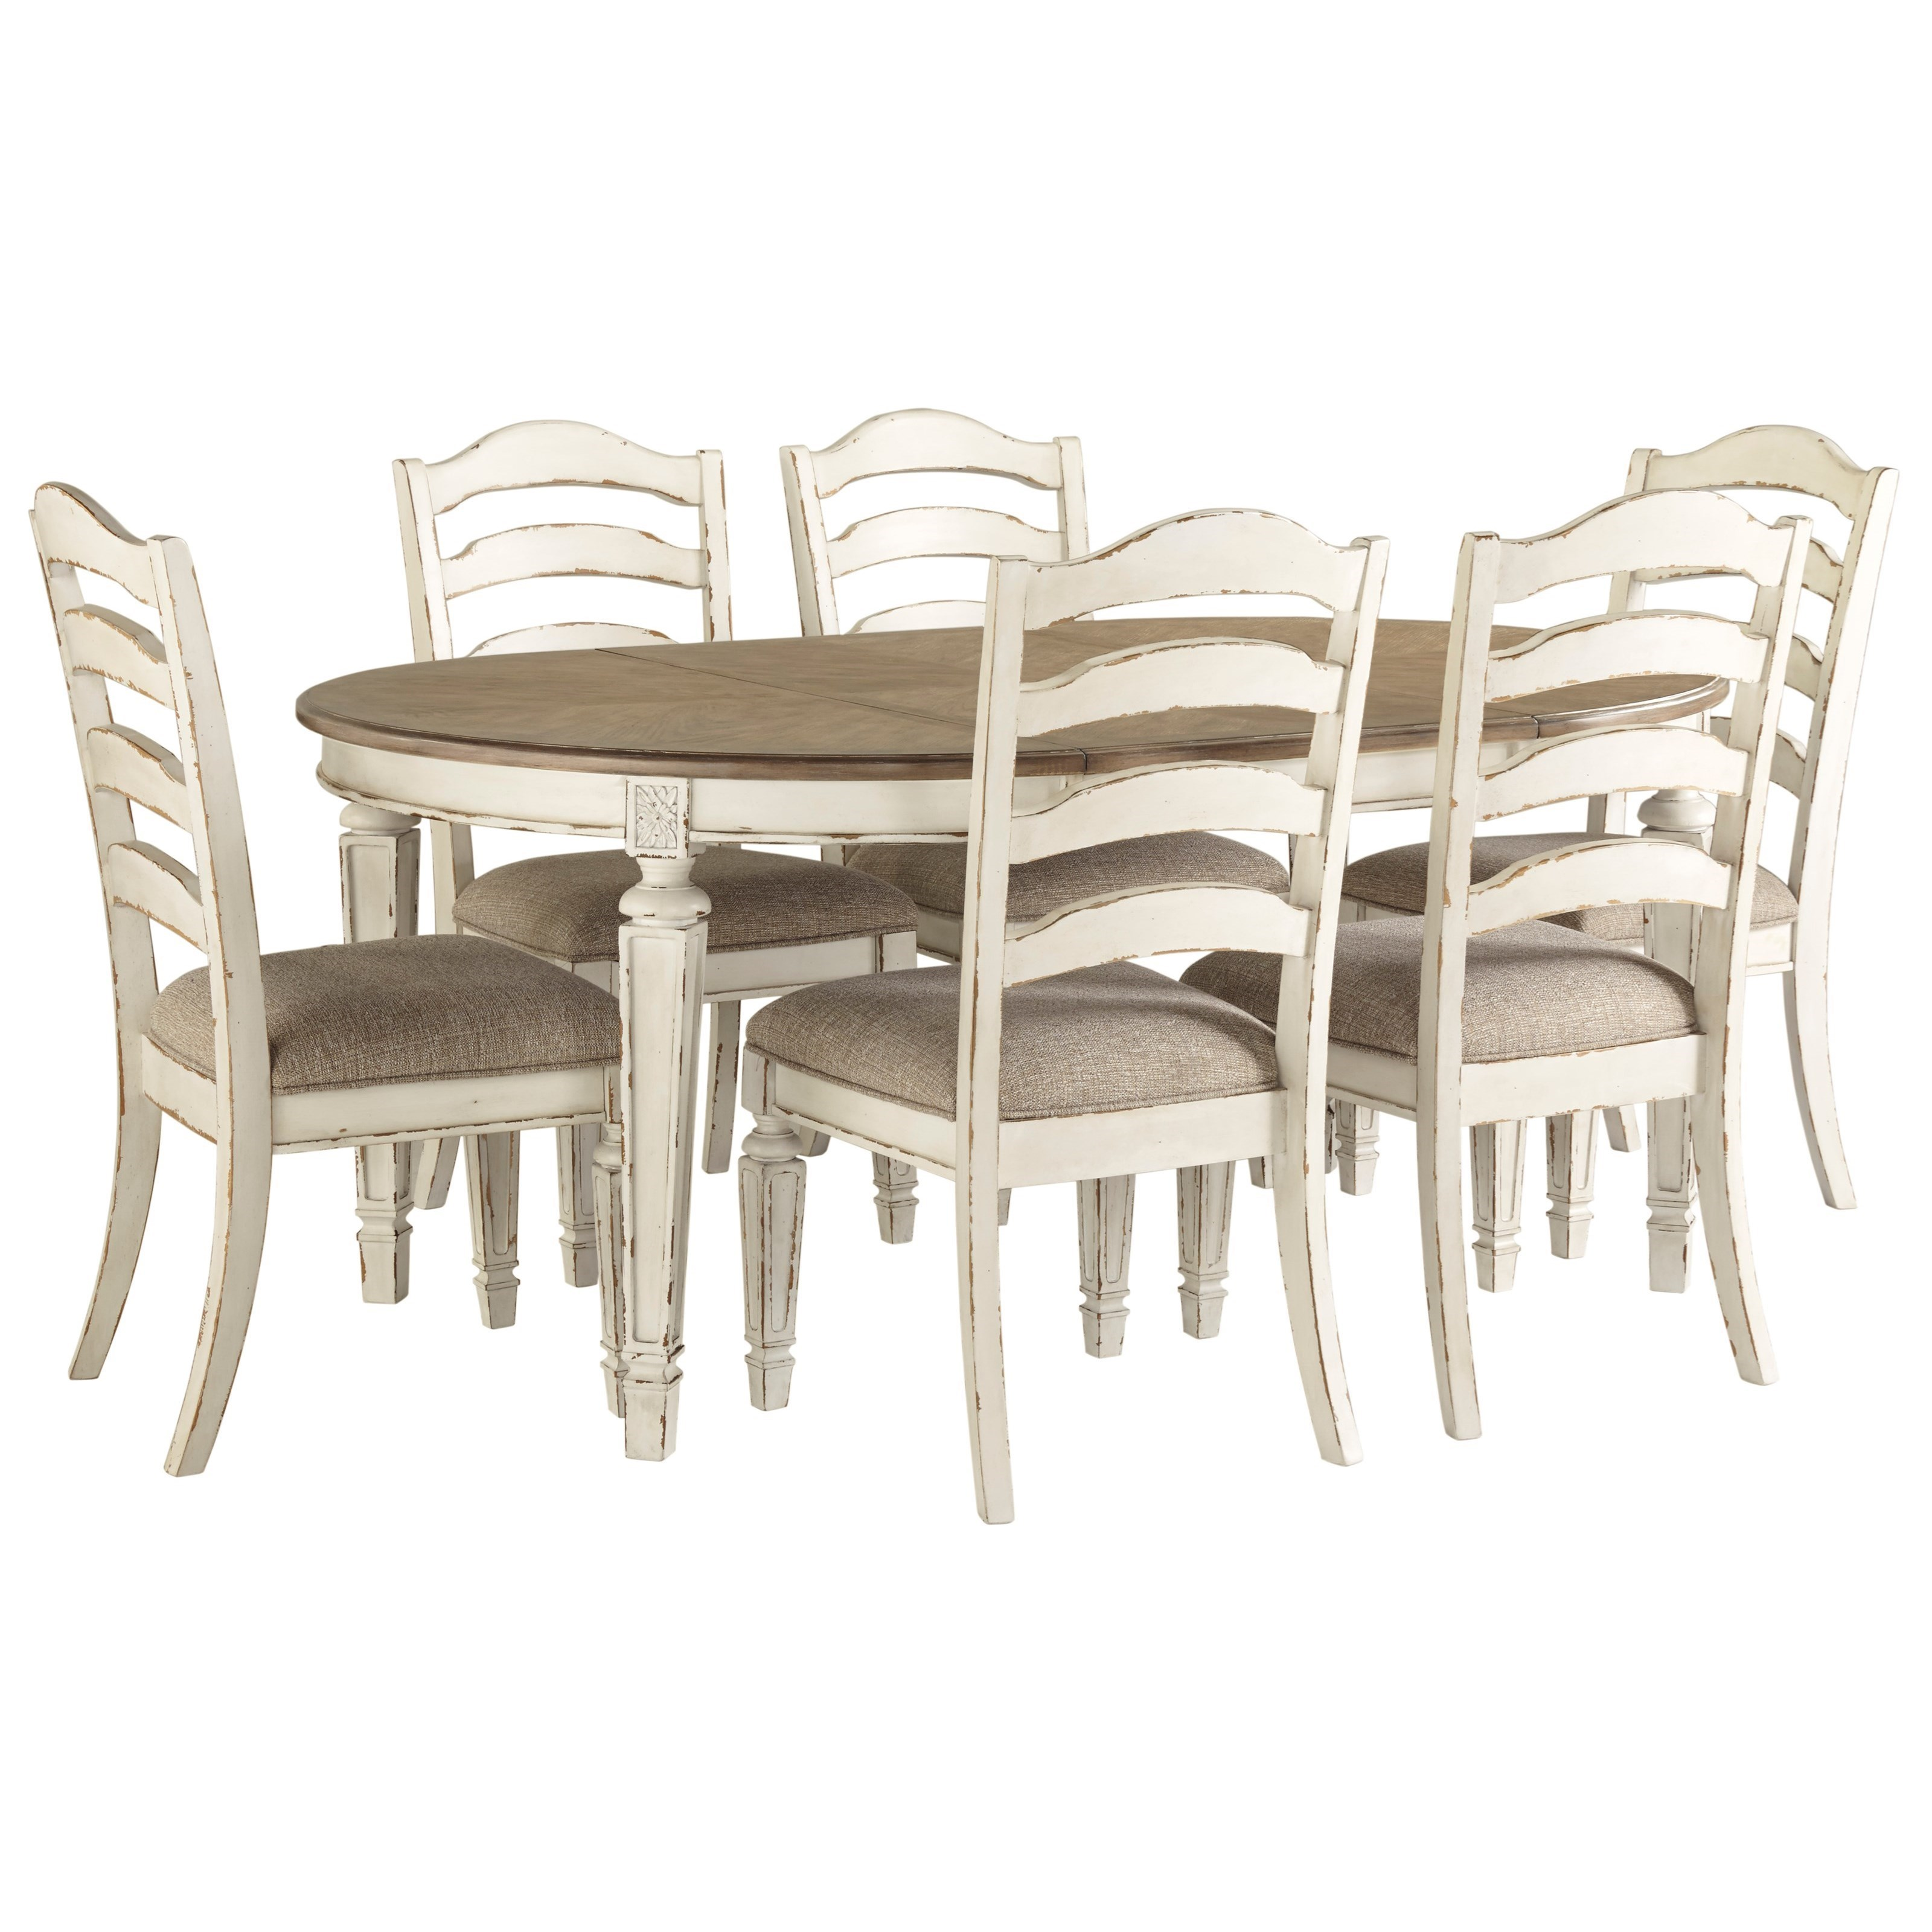 Dining Room Chair Sets Realyn 7 Piece Round Table And Chair Set By Signature Design By Ashley At Royal Furniture